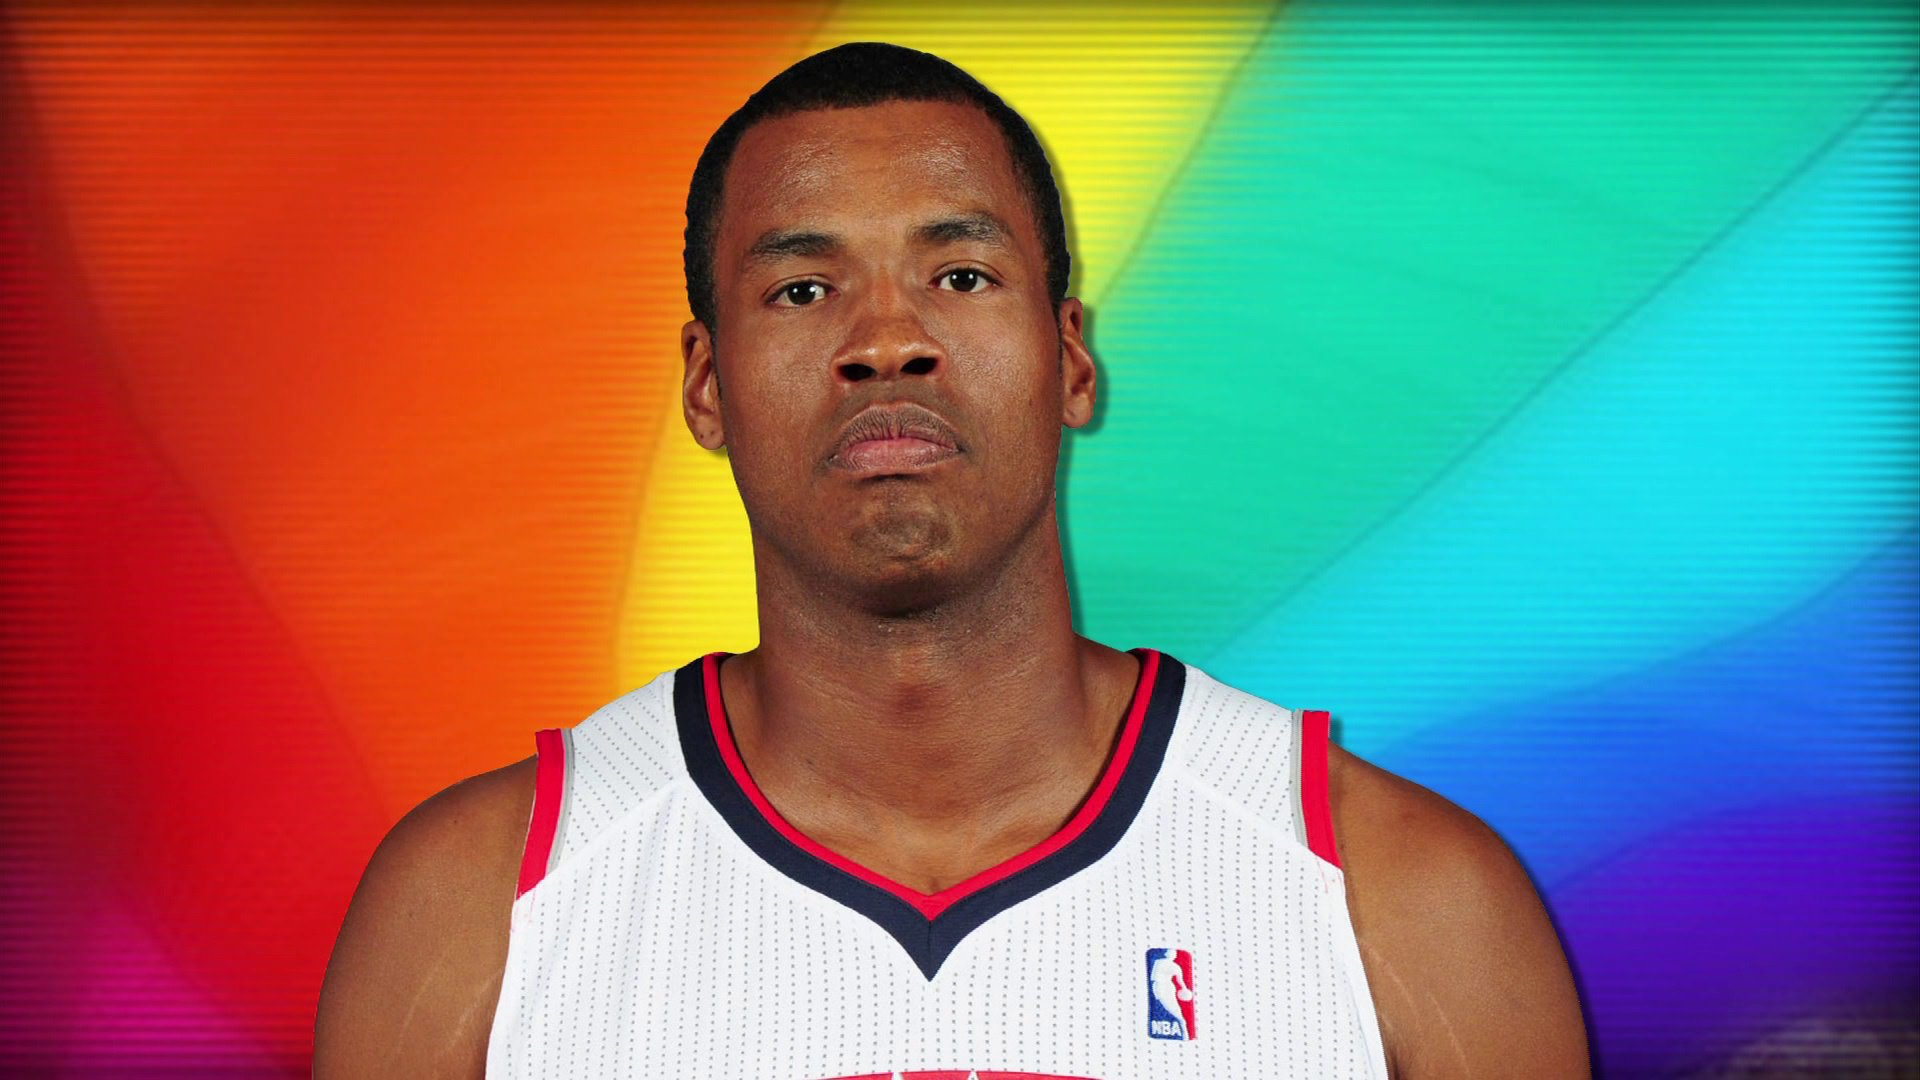 NBA player Jason Collins comes out as gay